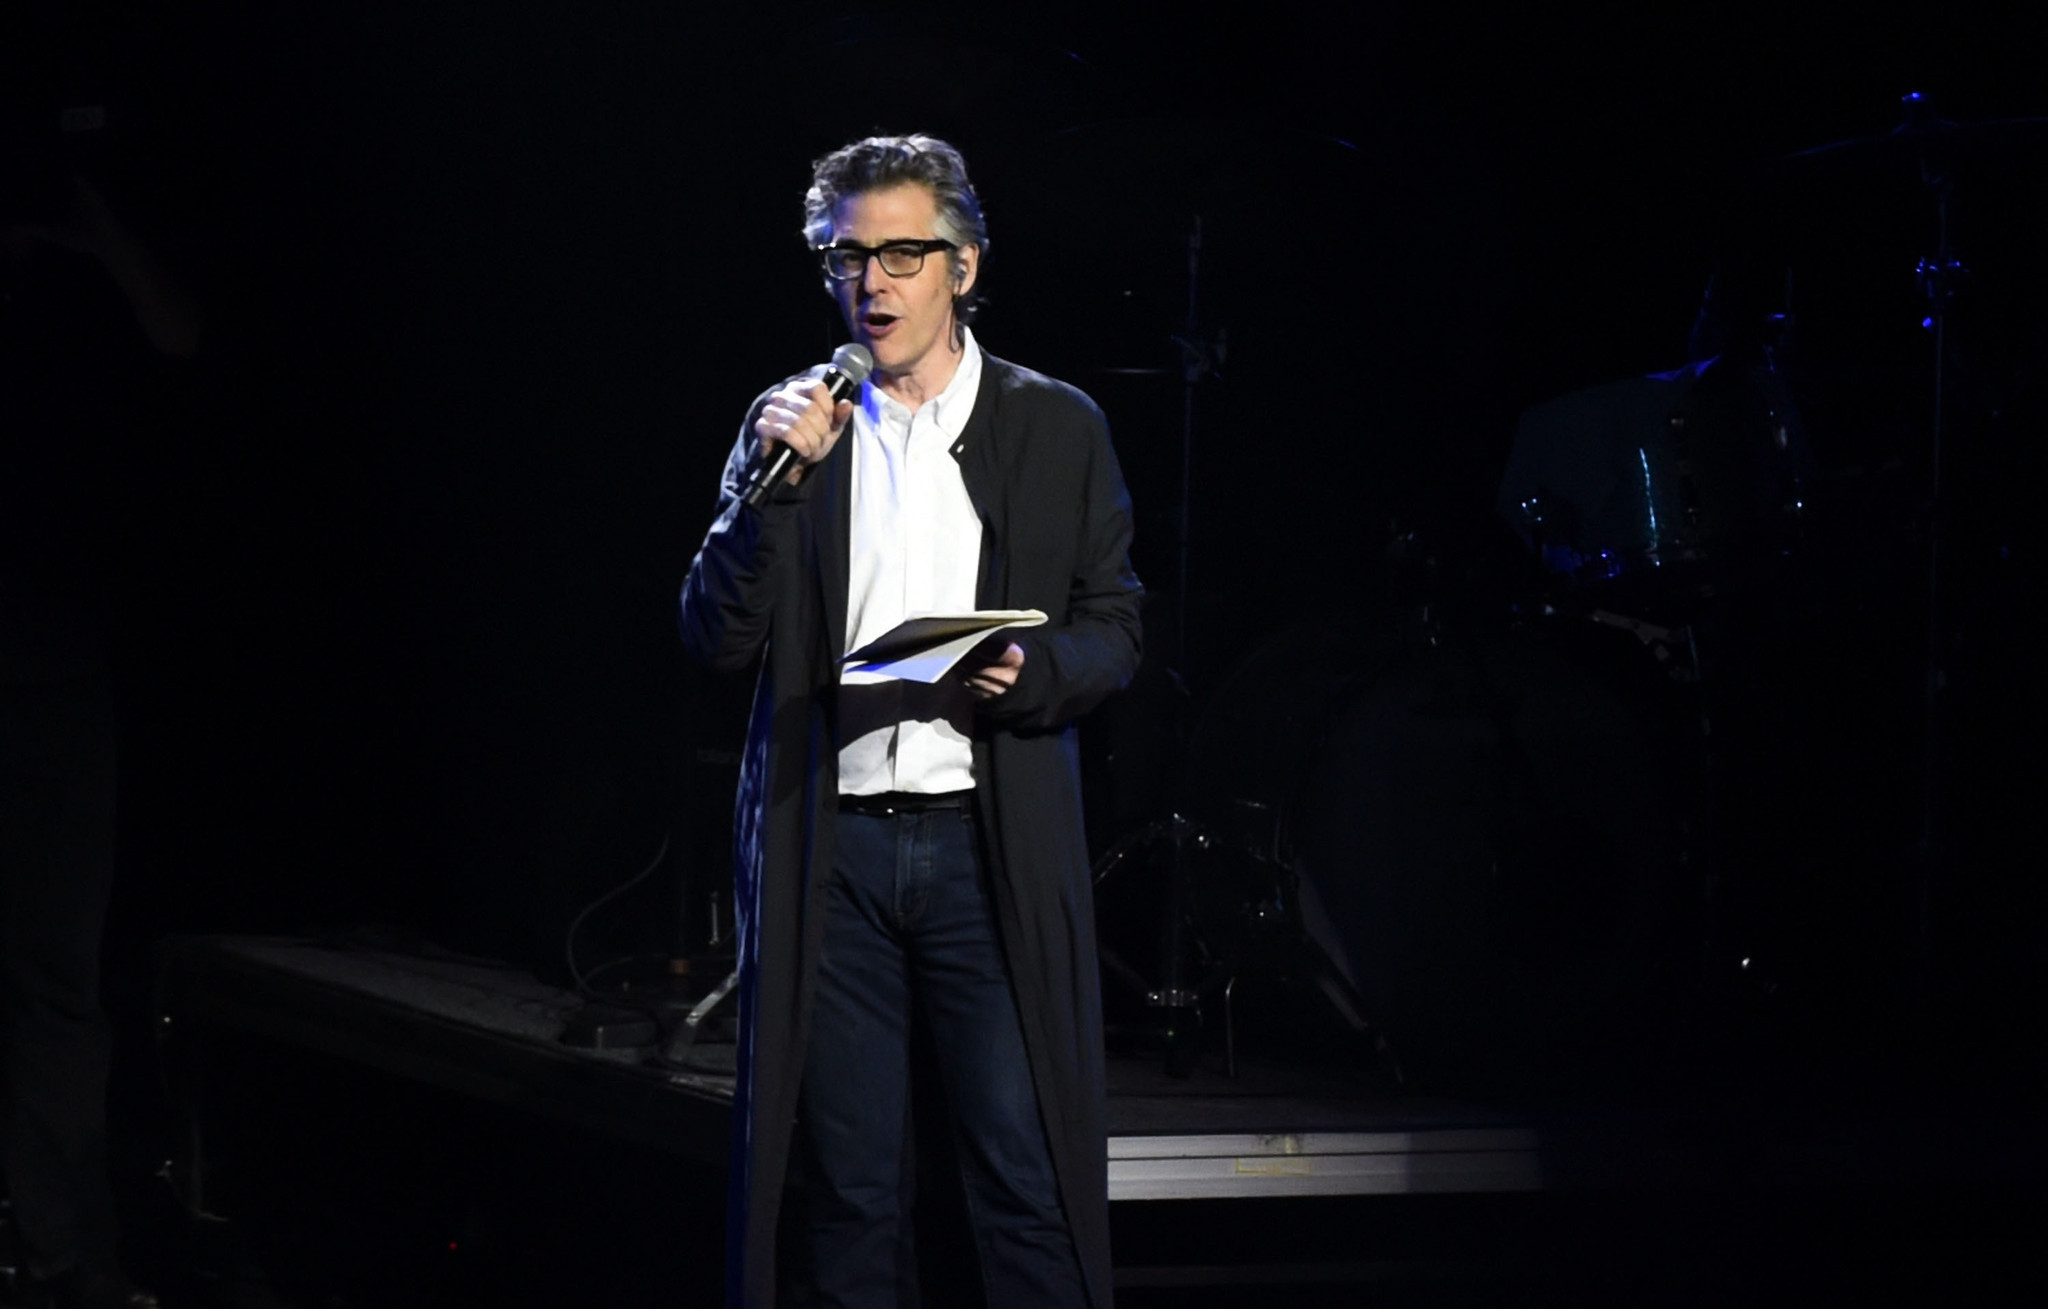 'This American Life' host Ira Glass has more projects up his sleeve